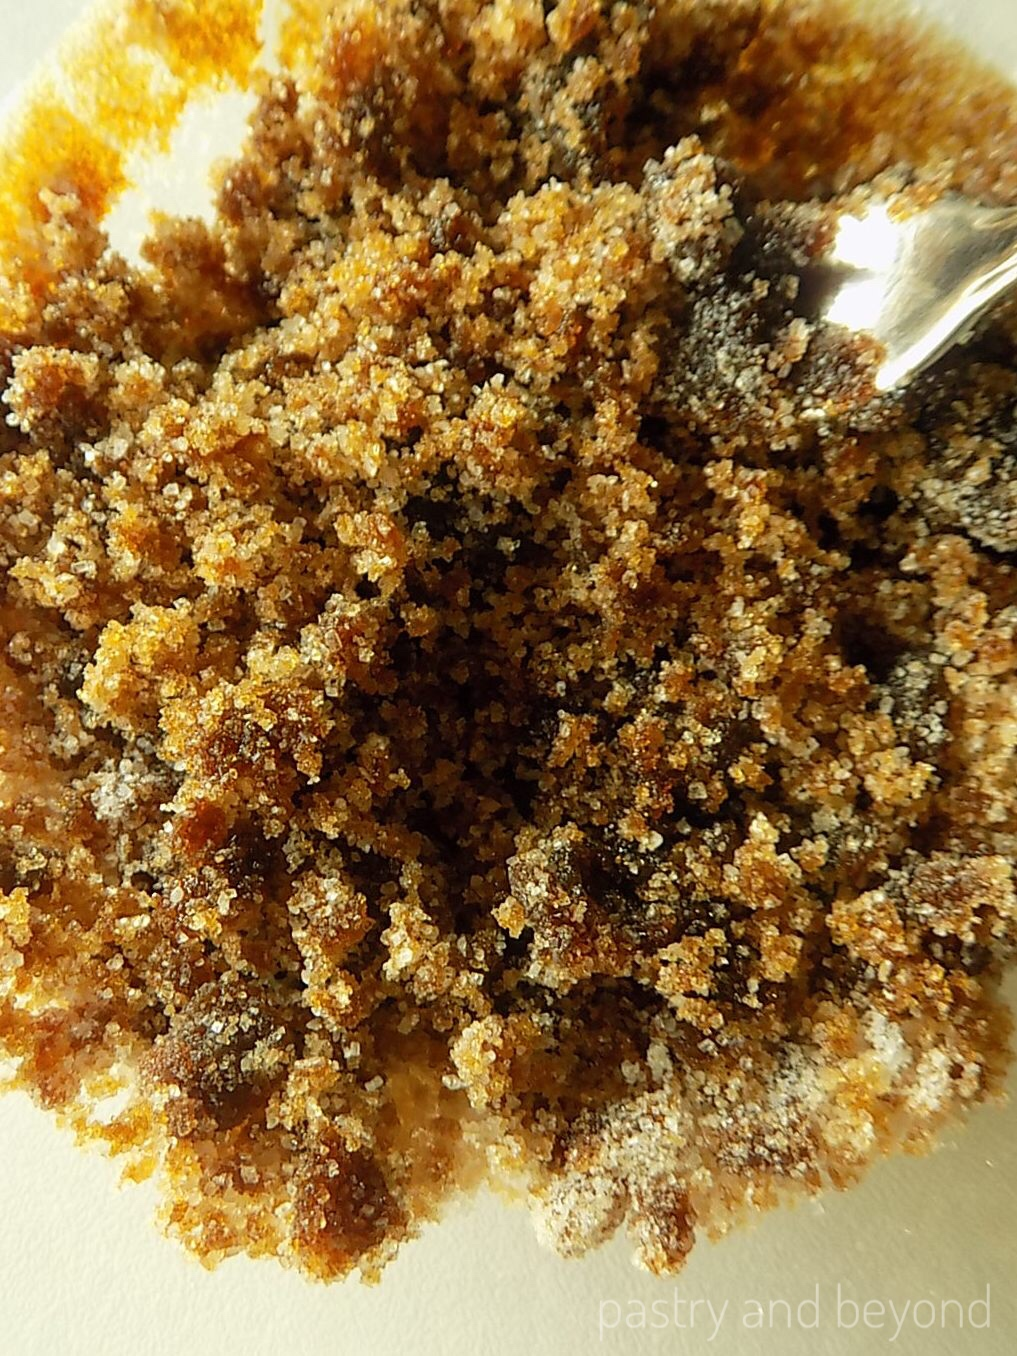 Steps of making homemade brown sugar: Mixing sugar and molasses with a fork.